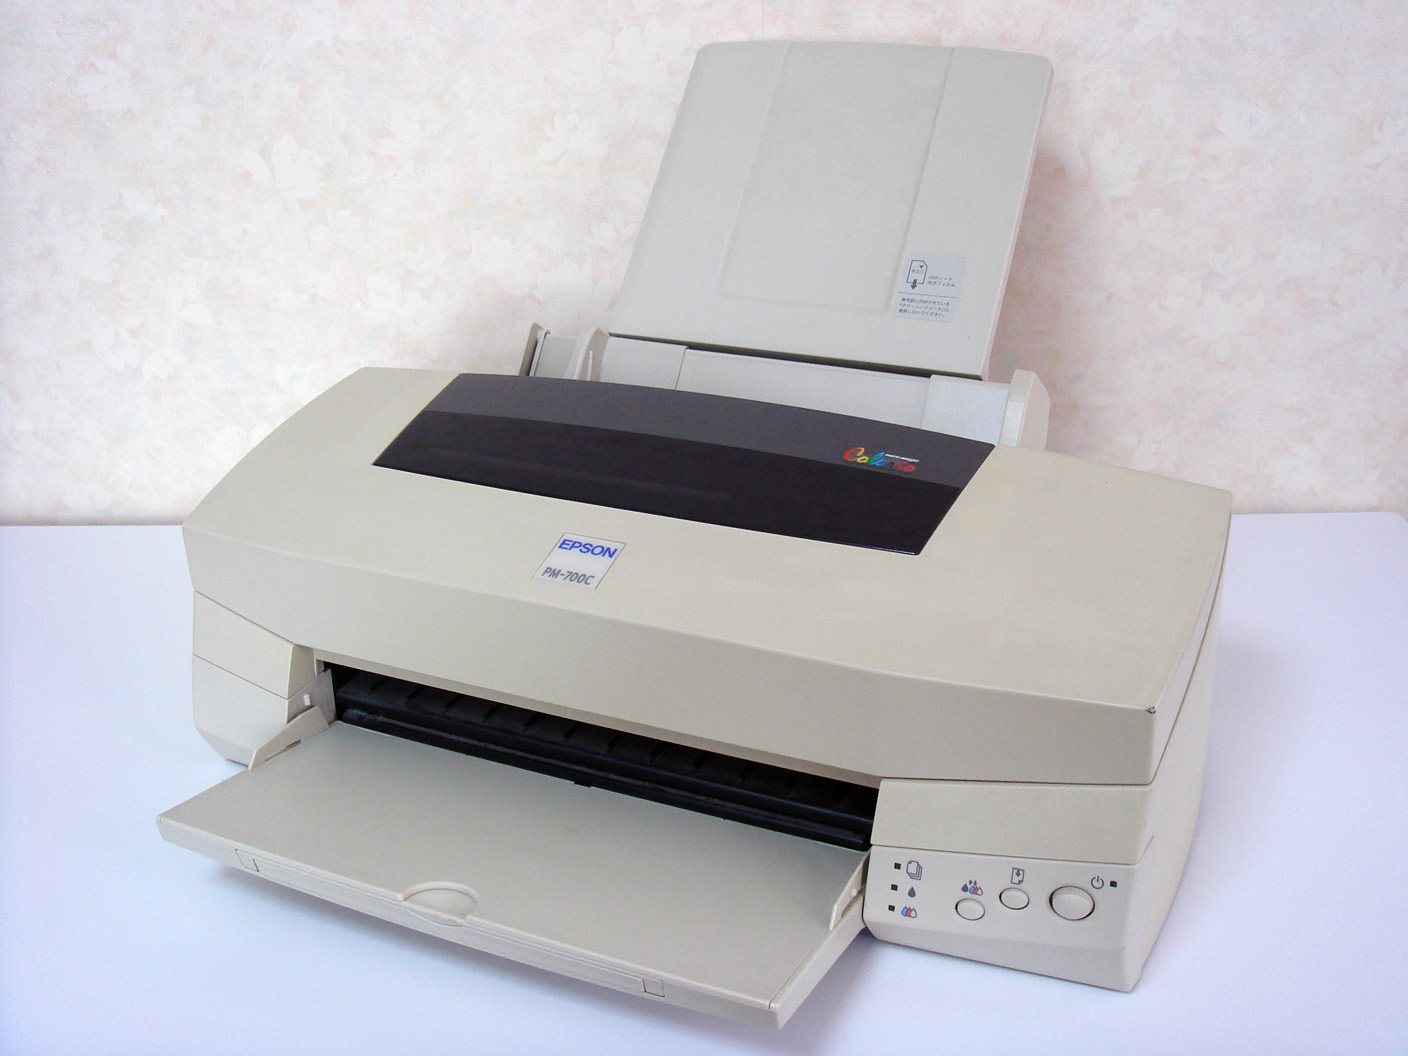 https://upload.wikimedia.org/wikipedia/commons/4/49/Epson_PM-700C.jpg